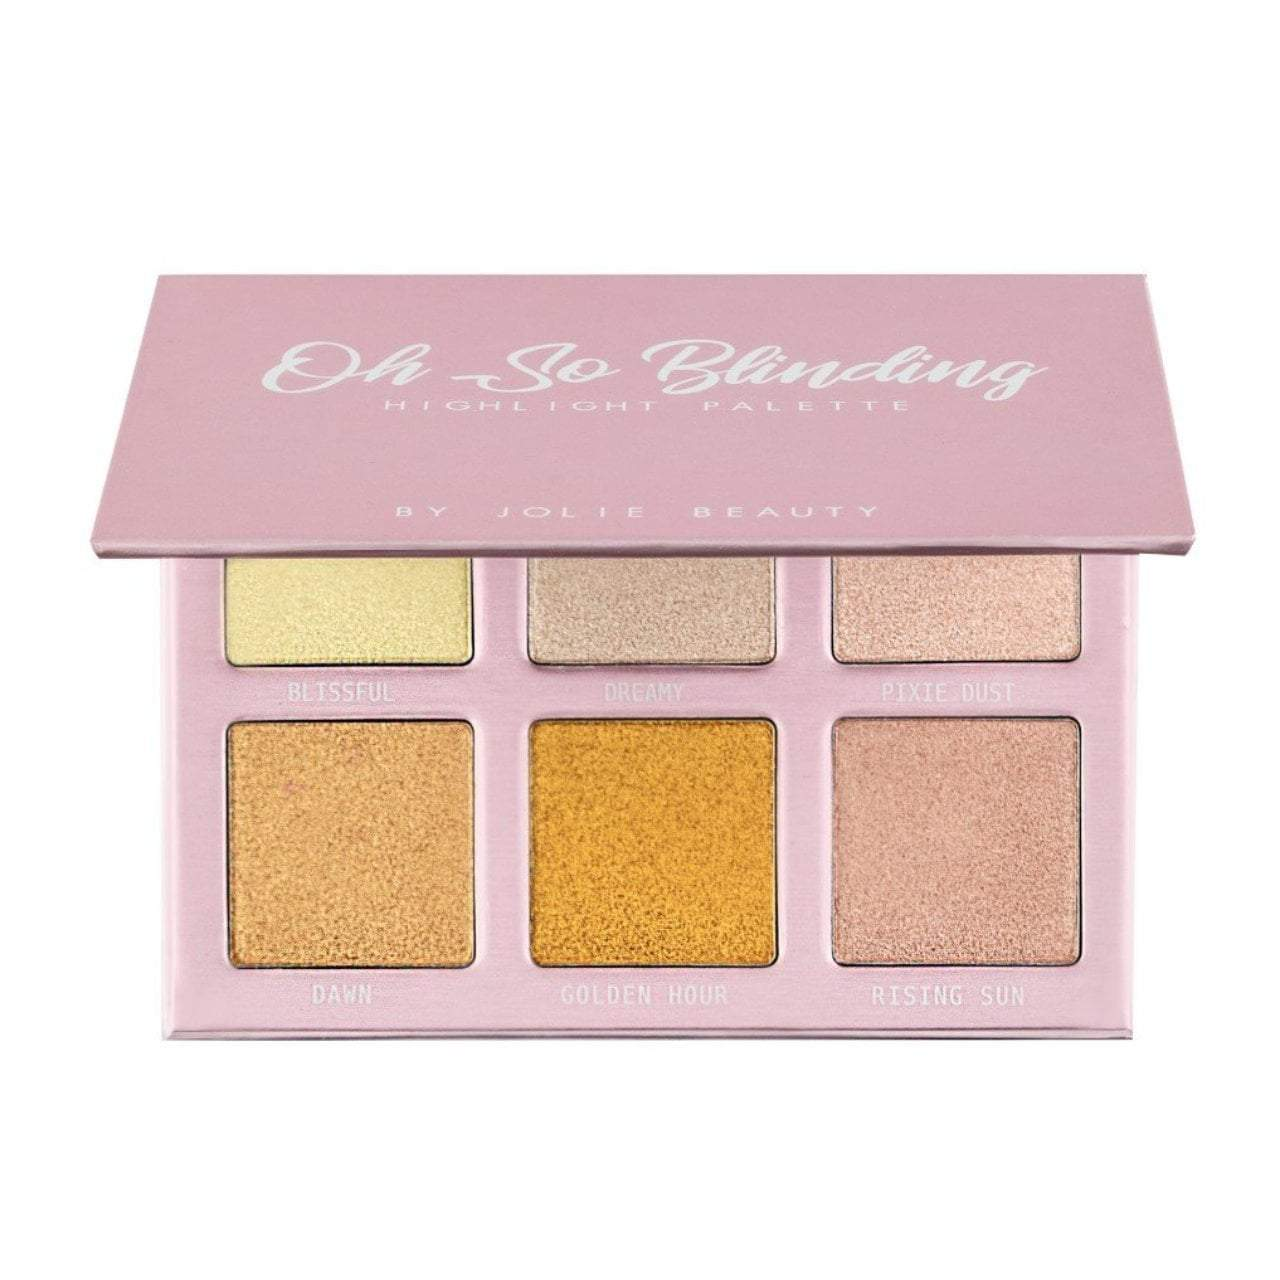 Oh So Blinding Highlighter Palette Highlighter Palette Jolie Beauty